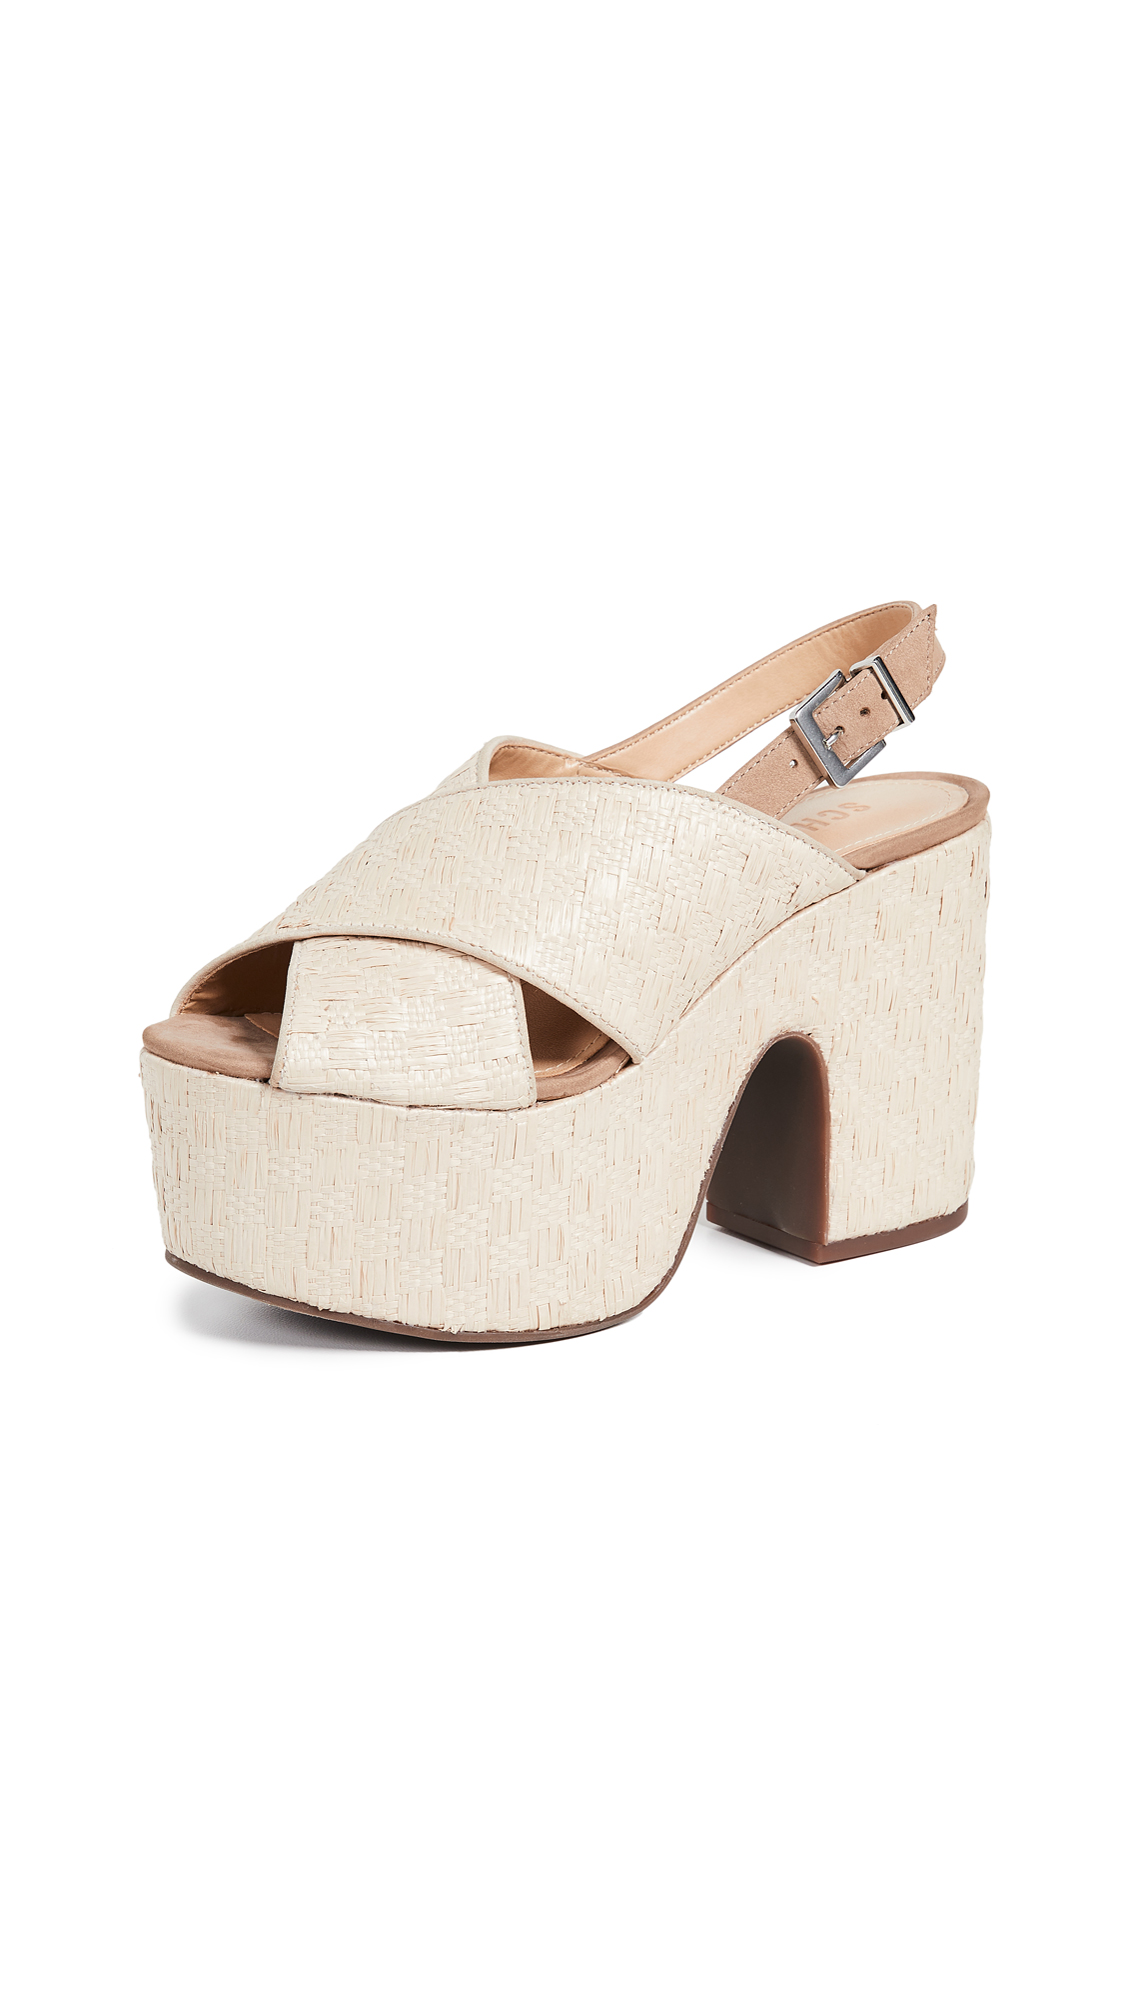 Schutz Kallina Platform Sandals - Natural